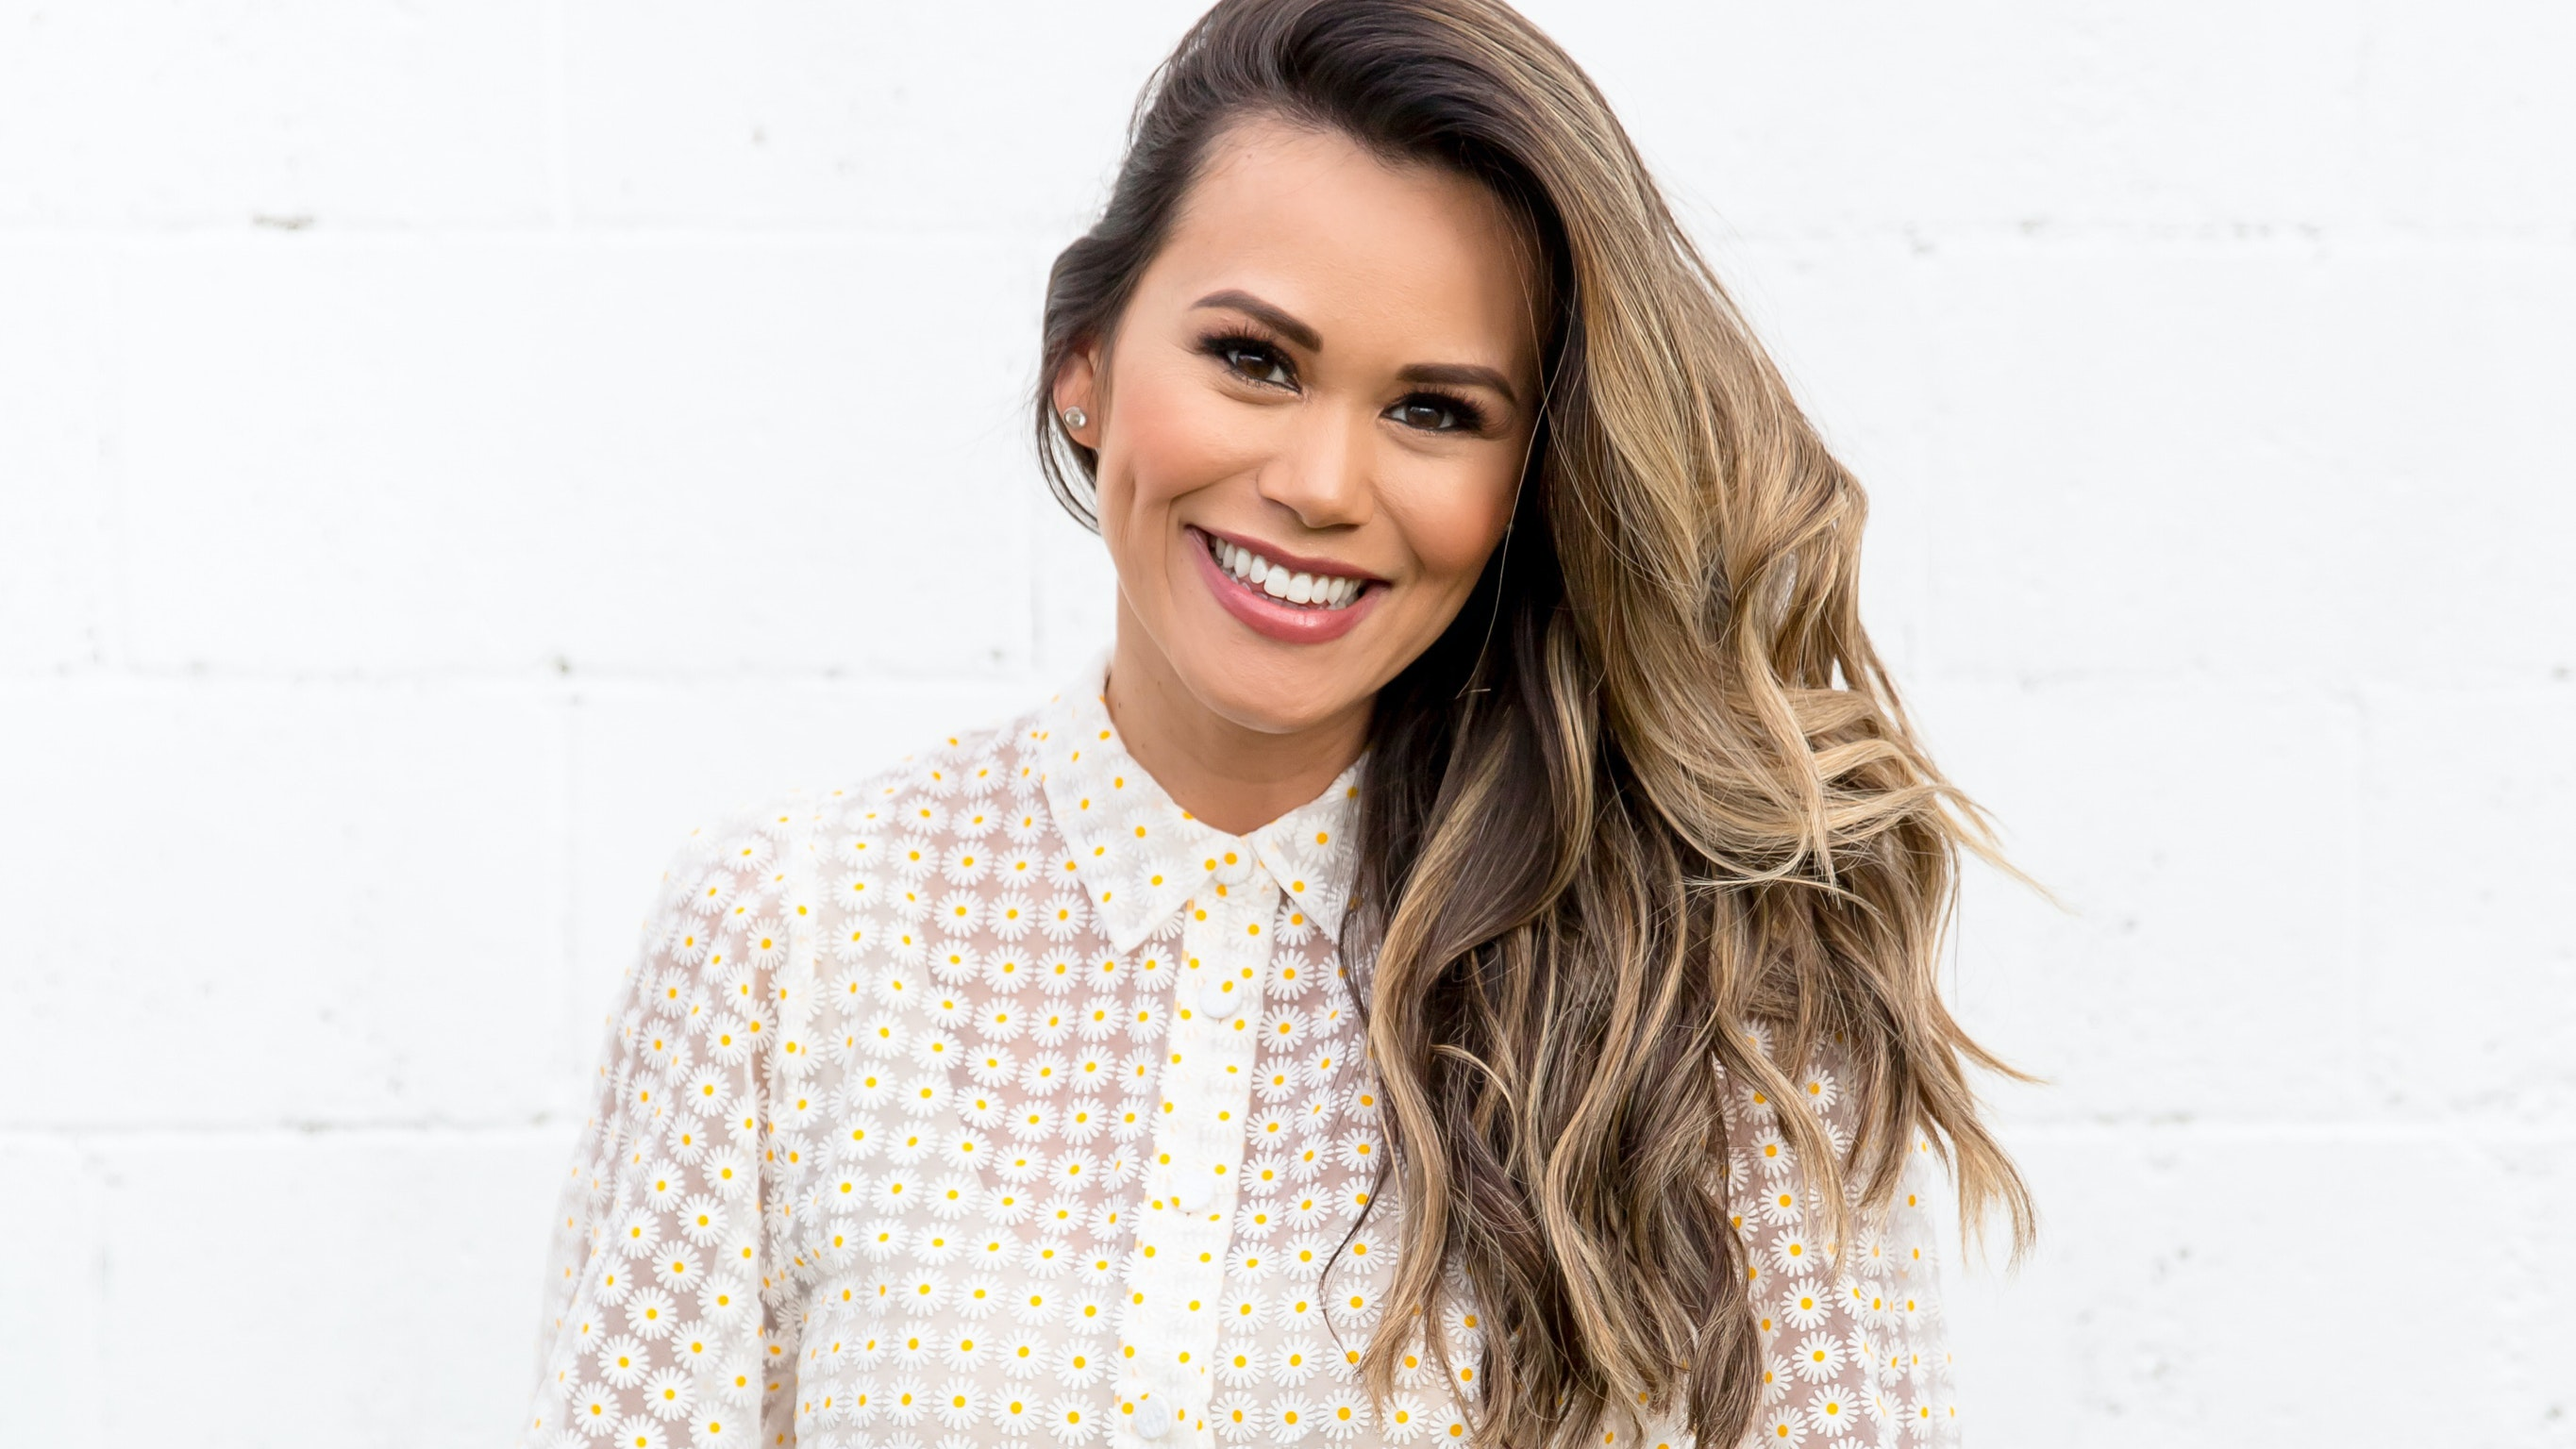 Food & Lifestyle Expert Brandi Milloy Talks Podcasts, Clean Beauty Favorites & Working Mom Hustle